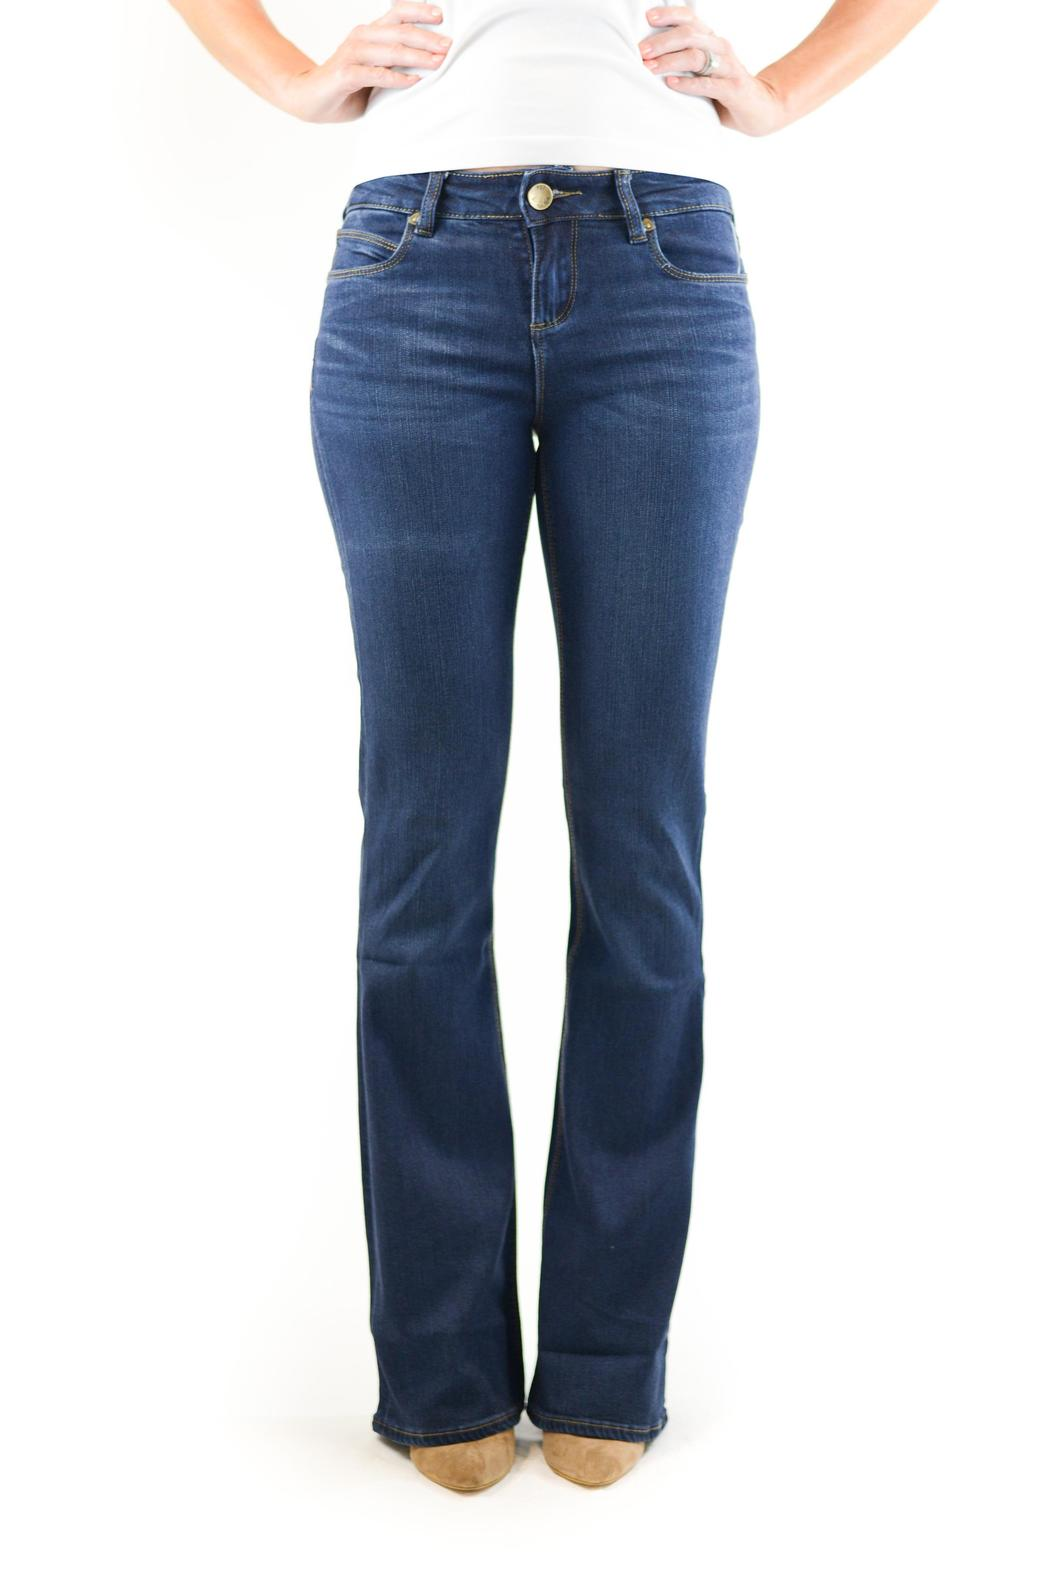 Kut from the Kloth Slim Bootcut Denim - Front Cropped Image